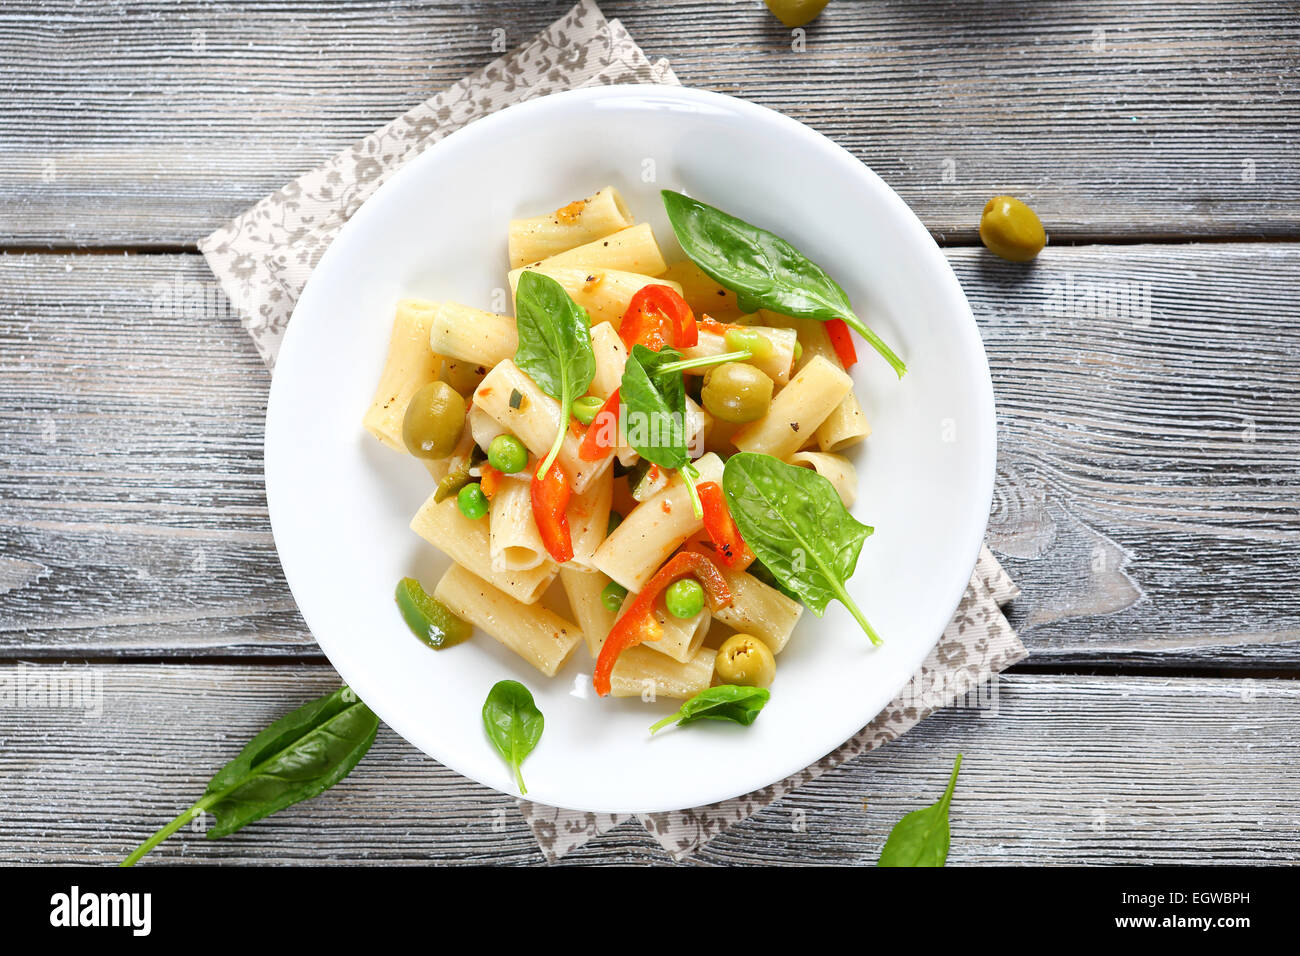 Pasta with roasted peppers, vegetable - Stock Image